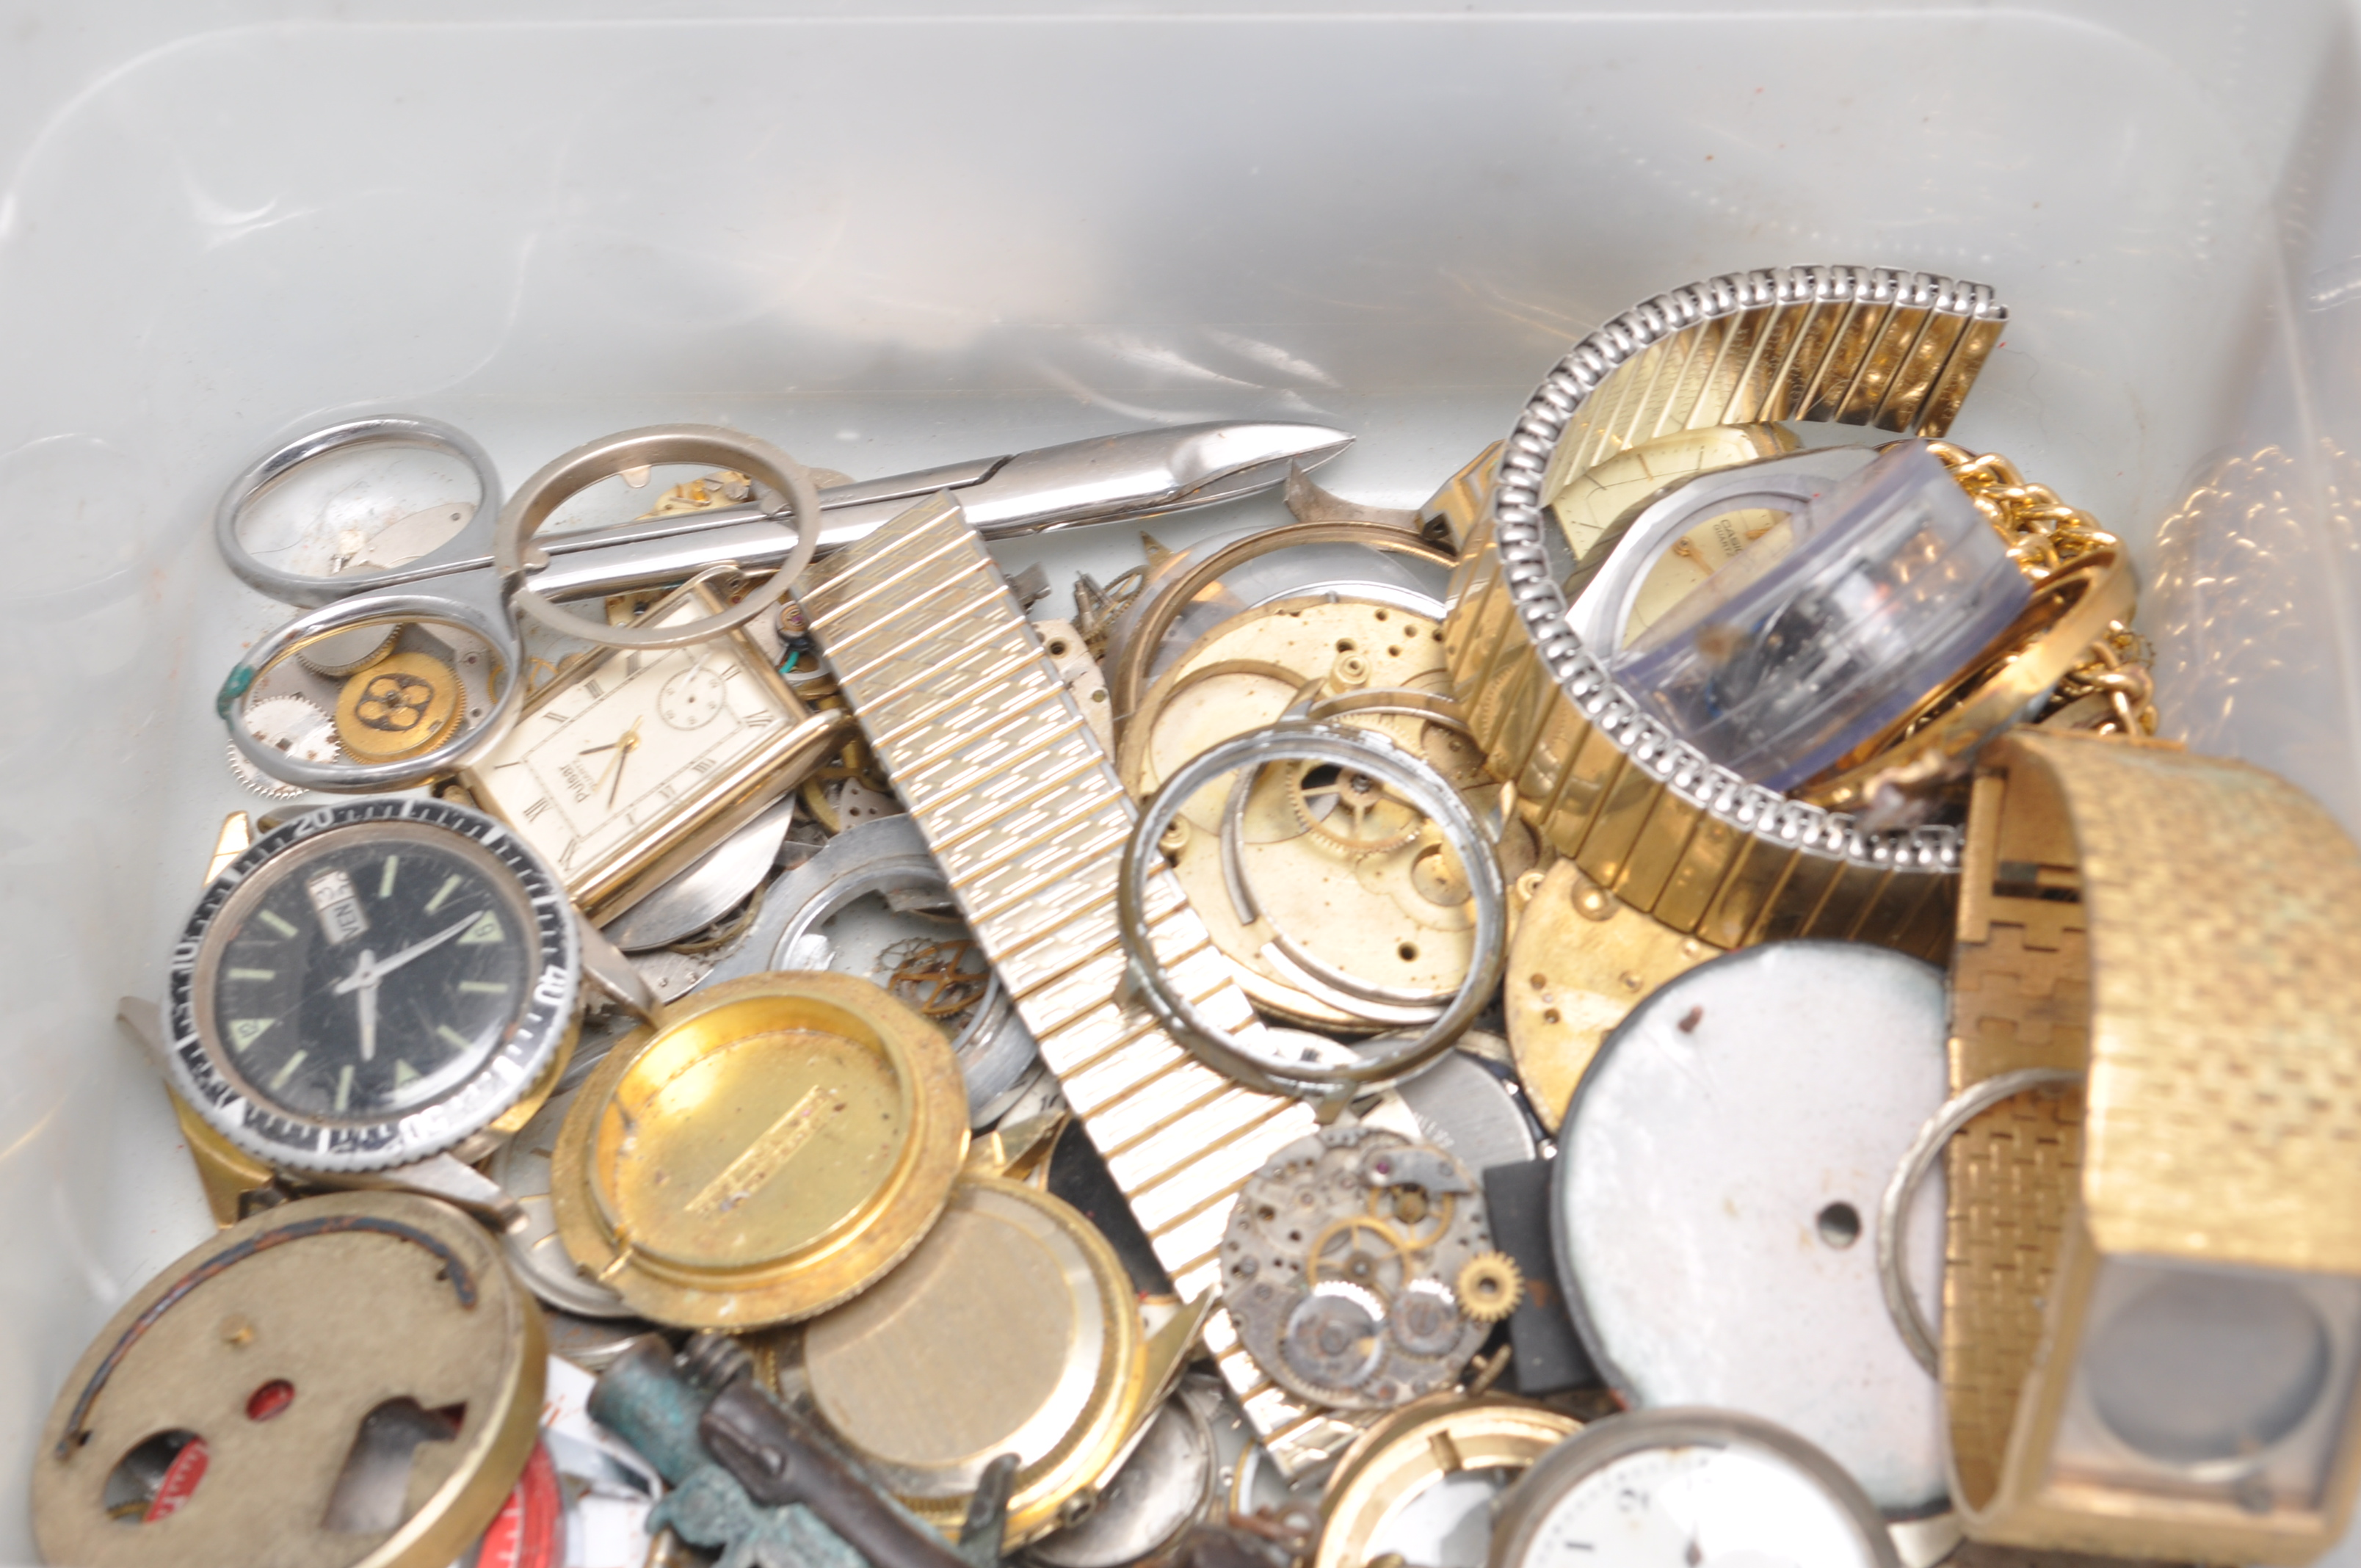 LARGE COLLECTION OF VARIOUS WATCH PARTS AND SPARES - Image 5 of 8